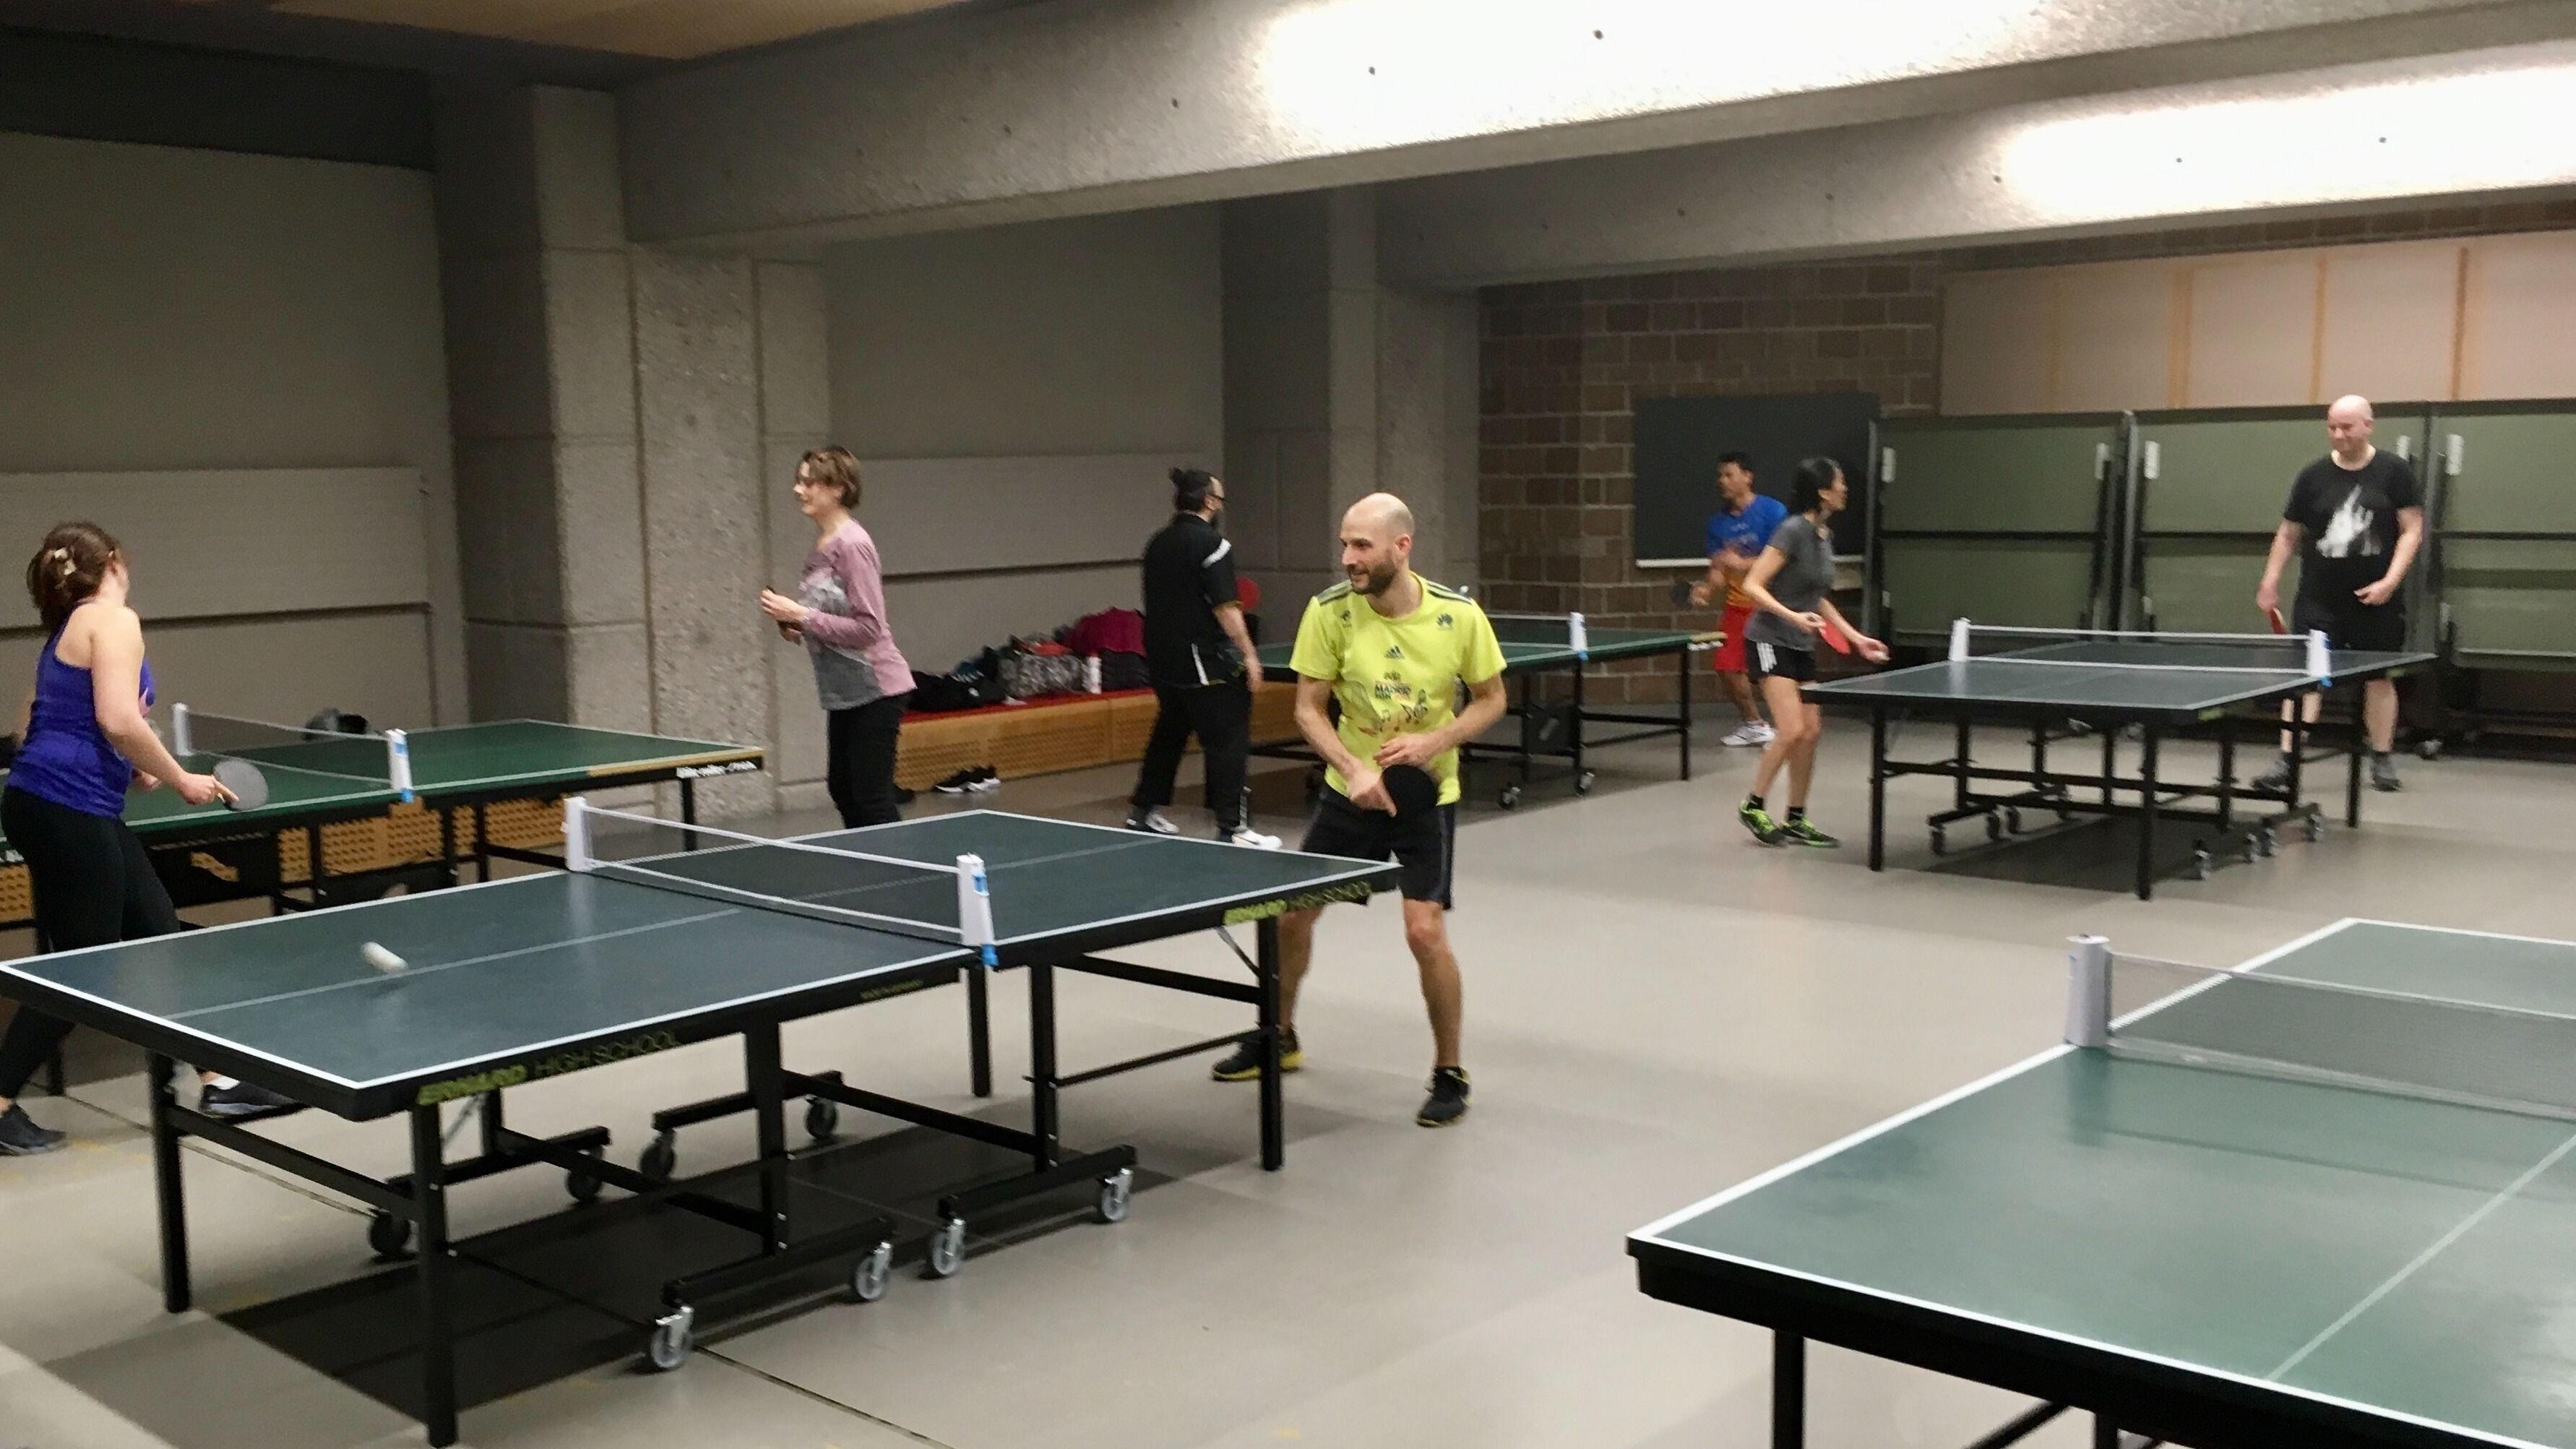 Thursday Ping Pong (Rive) - All levels